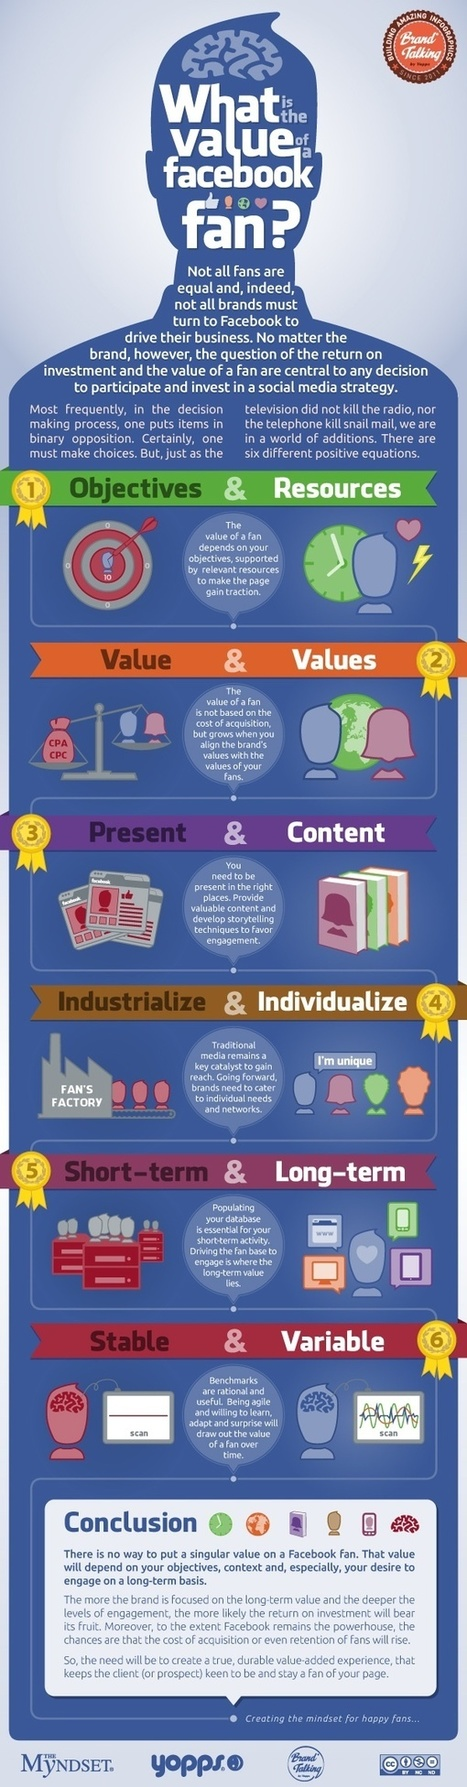 What is the Value of a Facebook Fan? | Social Media Useful Info | Scoop.it